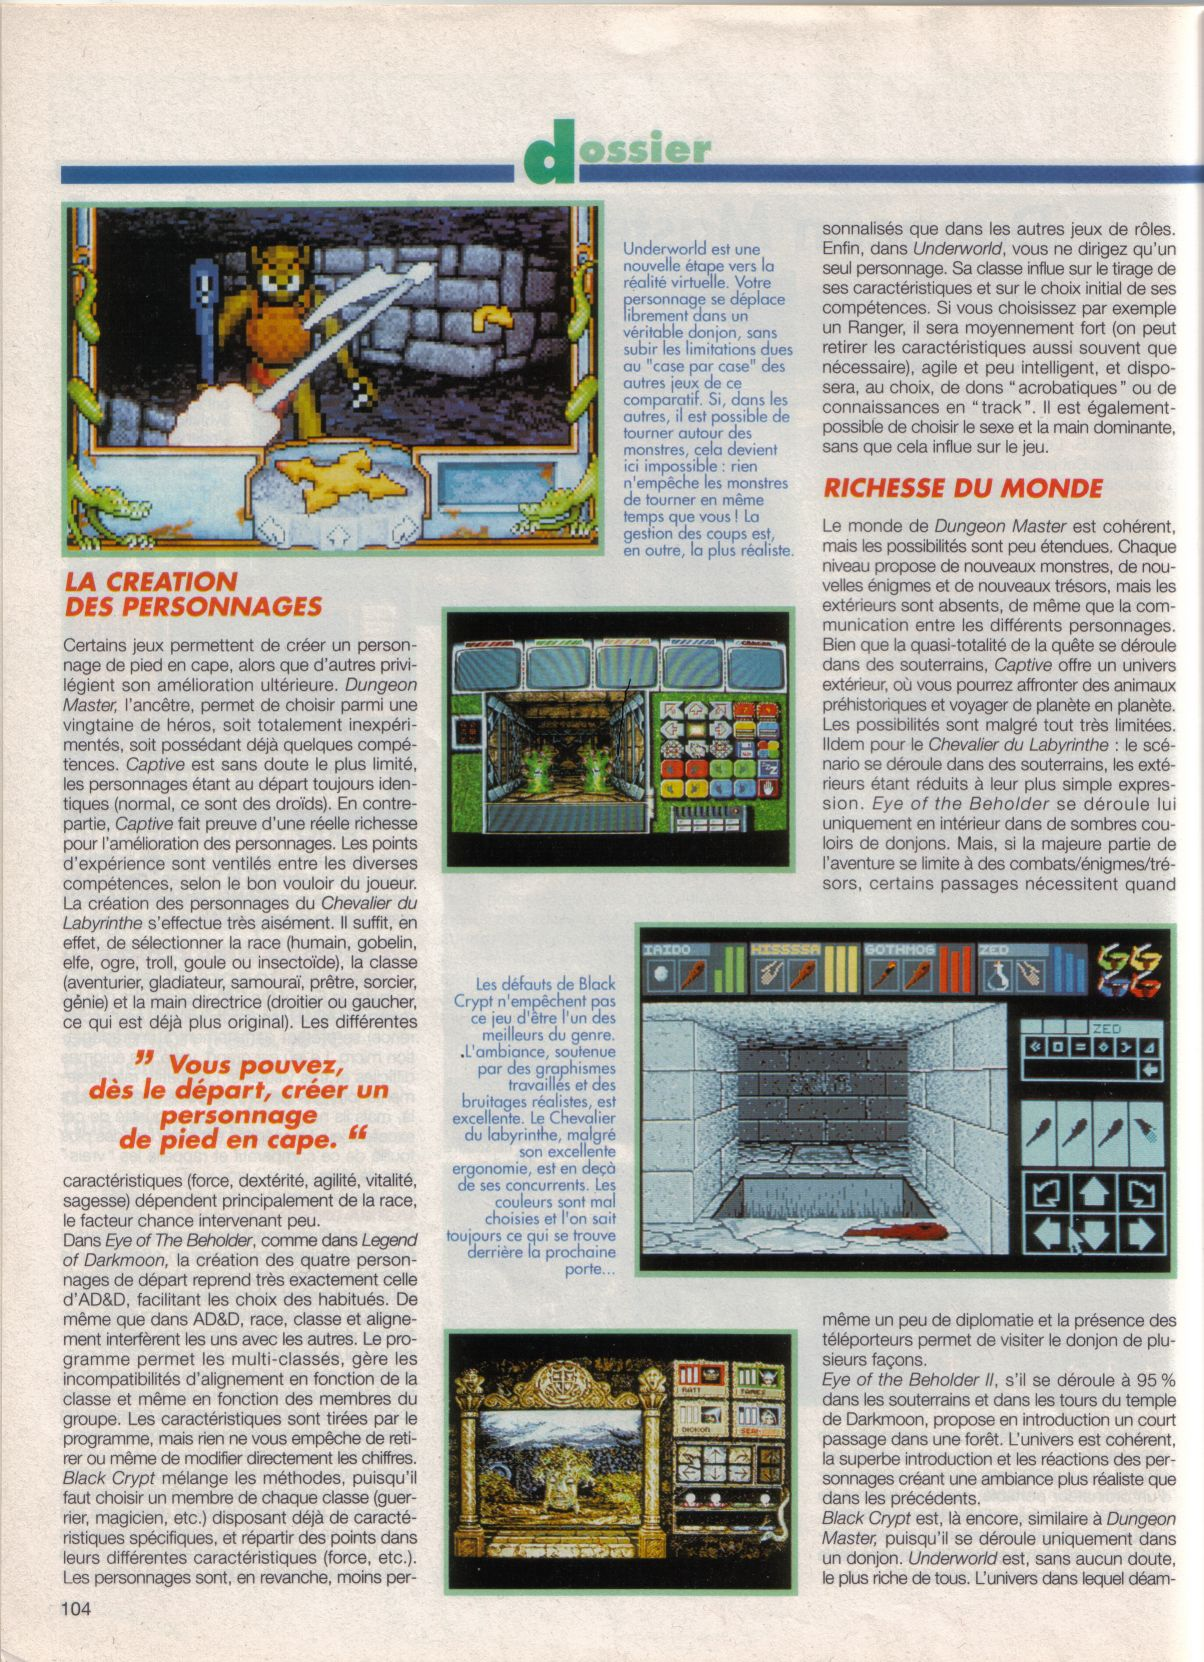 Dungeon Master Article published in French magazine 'Tilt', Issue #105, September 1992, Page 104